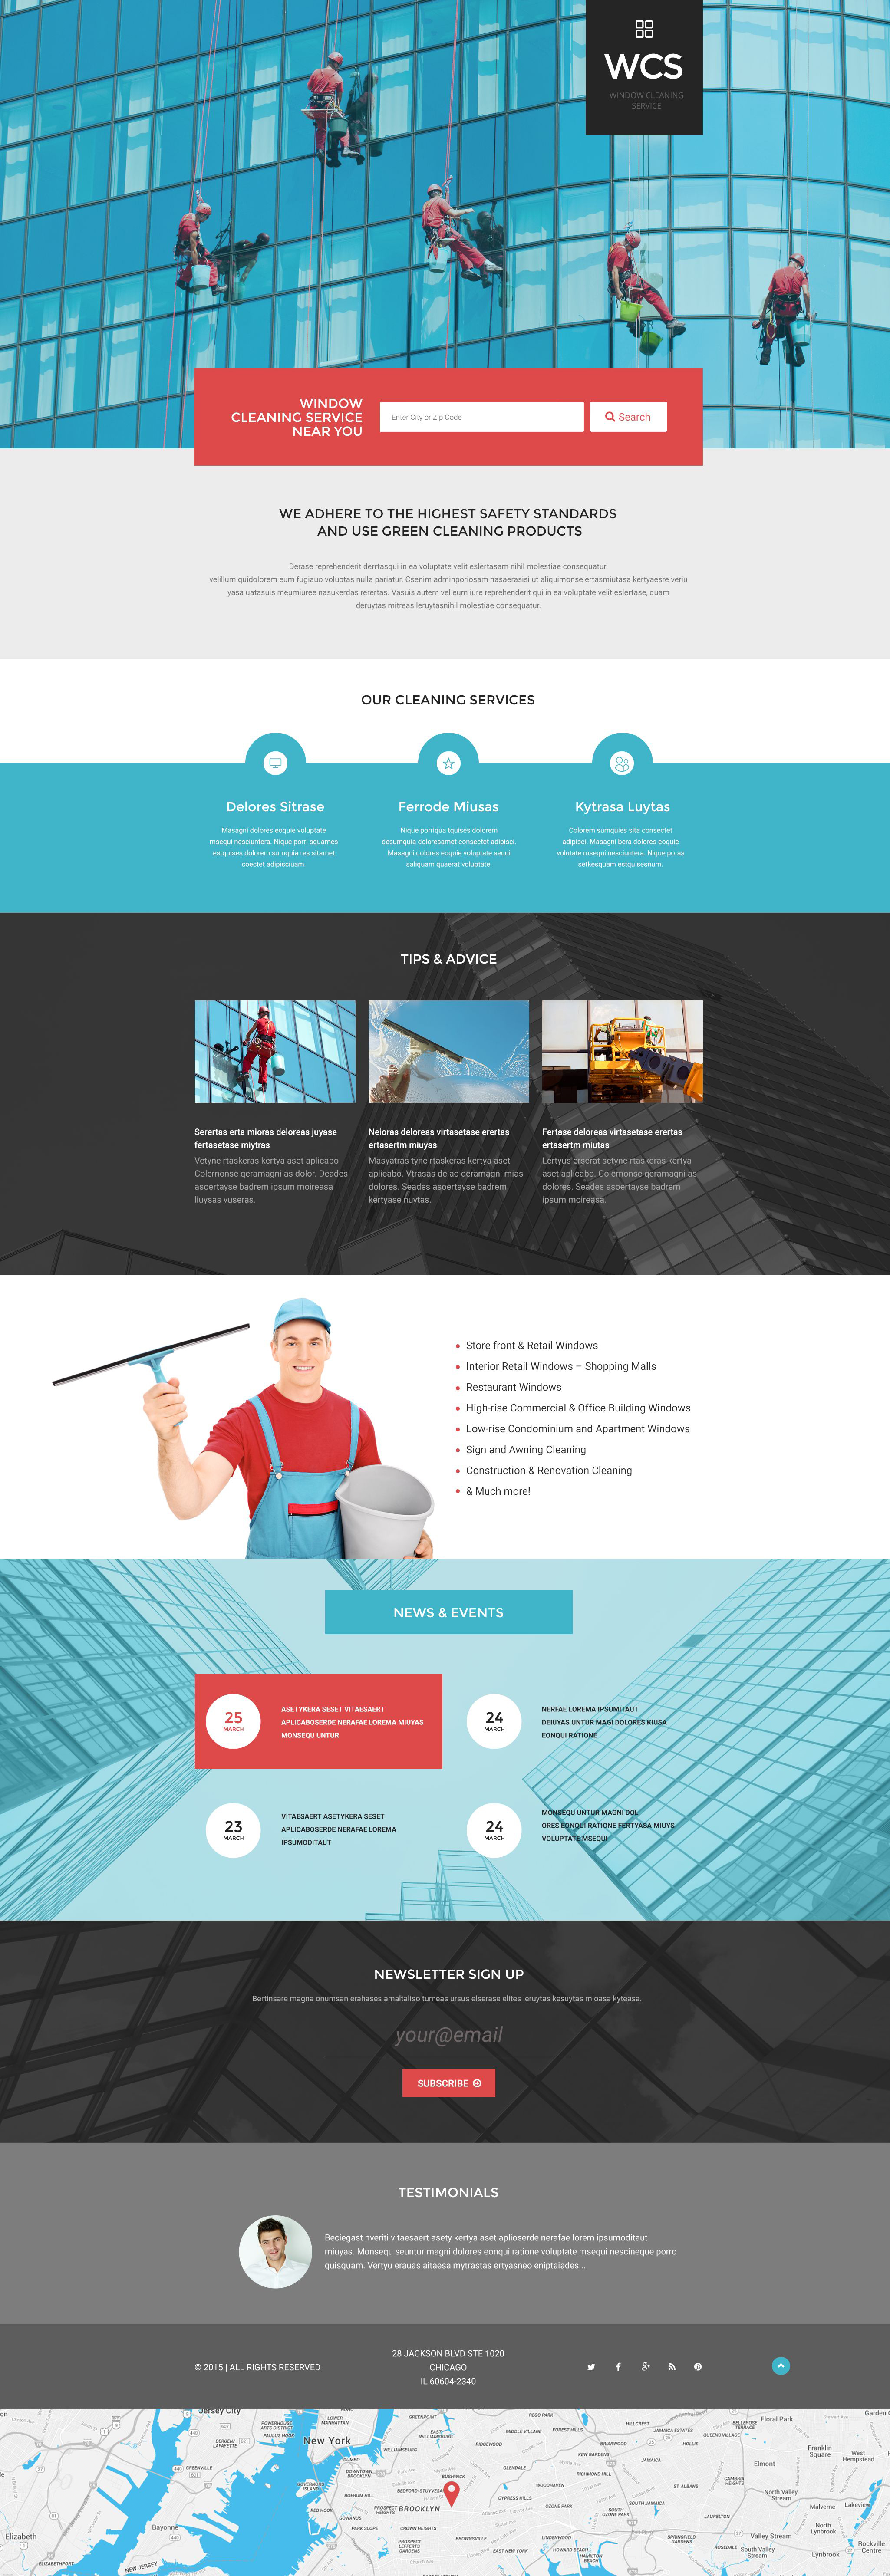 The Wcs Window Landing Page Template Design 54617, one of the best Landing Page templates of its kind (most popular, maintenance services), also known as wcs window Landing Page template, cleaning company Landing Page template, services Landing Page template, clean clear Landing Page template, house Landing Page template, estimate Landing Page template, vacuum cleaner Landing Page template, dirty Landing Page template, testimonials Landing Page template, workteam Landing Page template, tips Landing Page template, client Landing Page template, price Landing Page template, kitchen Landing Page template, sink Landing Page template, bathroom Landing Page template, toilets Landing Page template, tubs Landing Page template, shower Landing Page template, door Landing Page template, window Landing Page template, floor Landing Page template, dust Landing Page template, furniture Landing Page template, cobweb carpet Landing Page template, trash Landing Page template, debris Landing Page template, uniform Landing Page template, tidying up Landing Page template, sponge and related with wcs window, cleaning company, services, clean clear, house, estimate, vacuum cleaner, dirty, testimonials, workteam, tips, client, price, kitchen, sink, bathroom, toilets, tubs, shower, door, window, floor, dust, furniture, cobweb carpet, trash, debris, uniform, tidying up, sponge, etc.